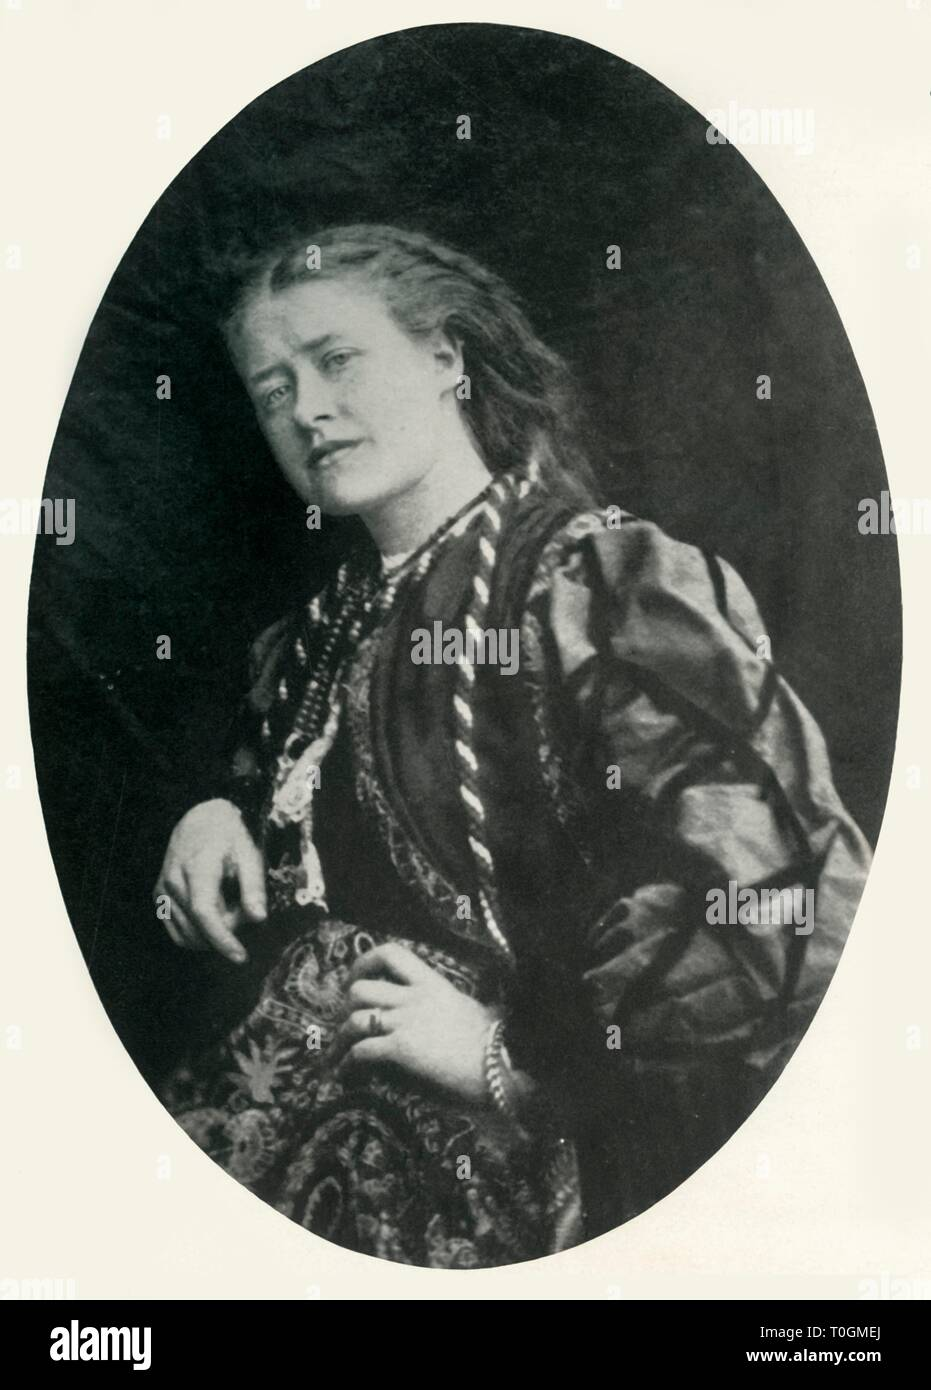 """Ellen Terry, c1863, (1948). Portrait of British actress Dame Ellen Terry (1847-1928). Terry was the leading Shakespearean actress of her time. Aged 16 she married the 46-year-old artist George Frederic Watts, but they separated within a year. She is pictured here 'when Mrs. G. F. Watts'. From """"The Saturday Book"""", Eighth Year, edited by Leonard Russell. [Hutchinson, London, 1948] - Stock Image"""